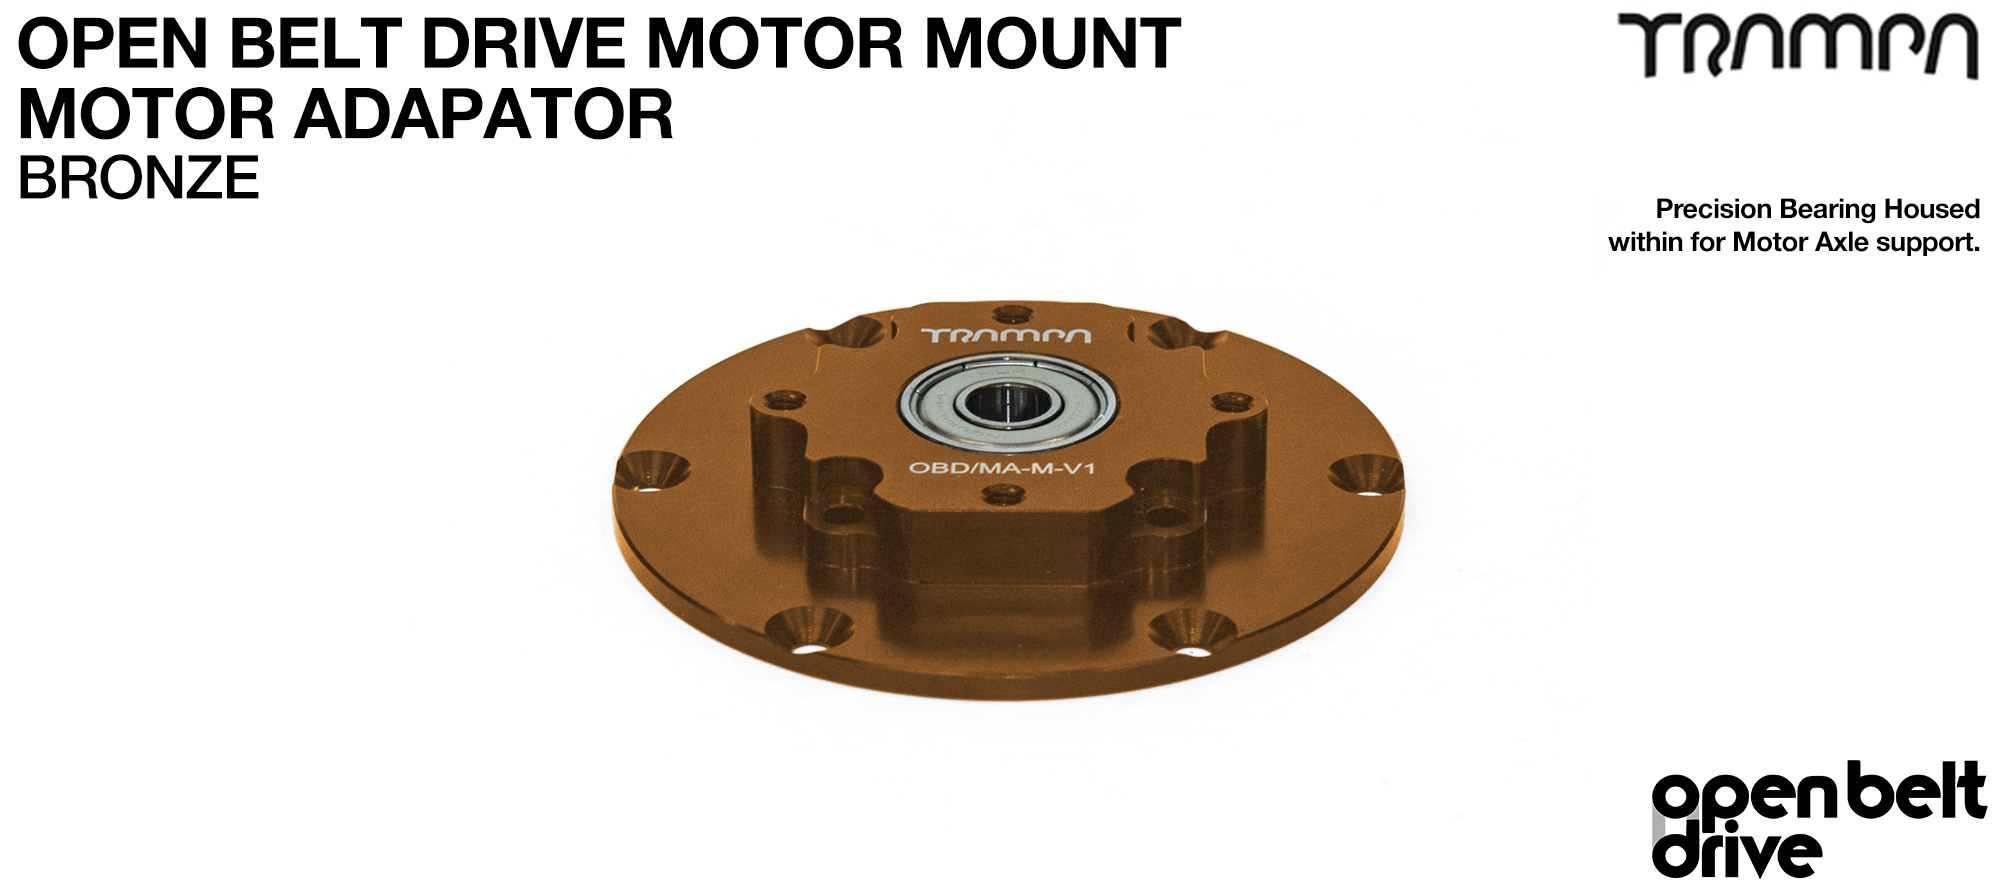 OBD Motor Adaptor with Housed Bearing - BRONZE